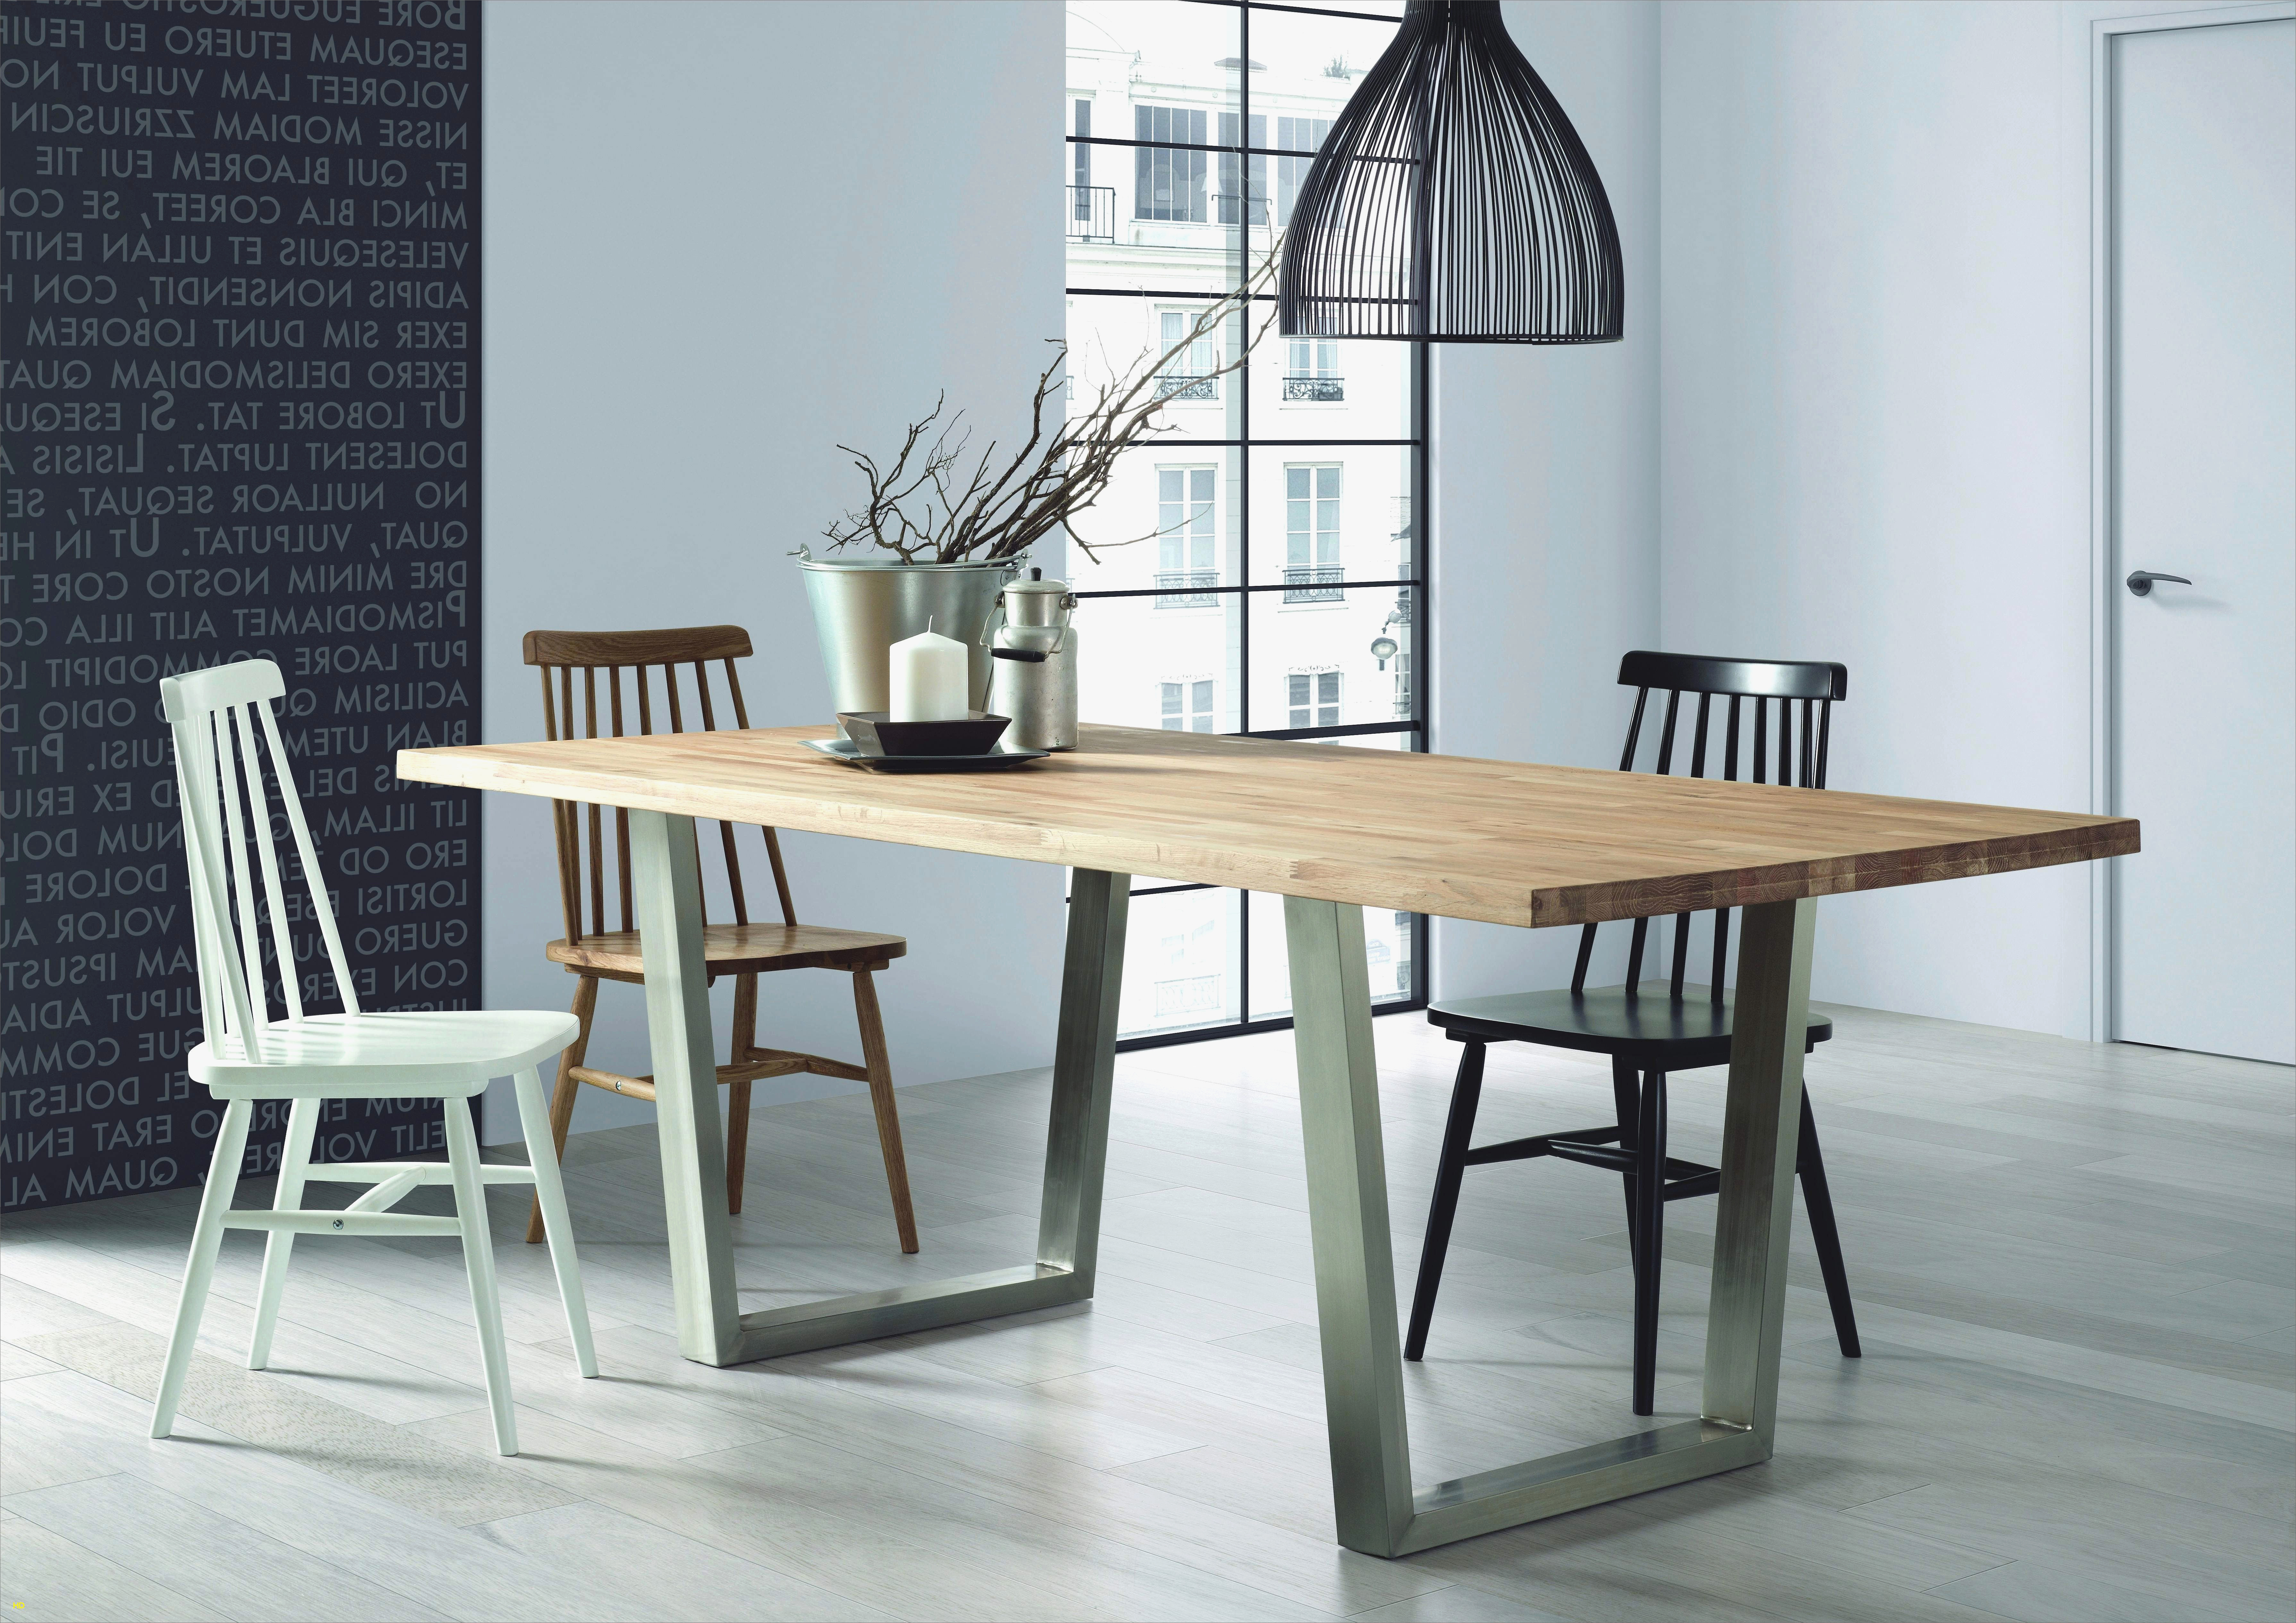 Table Salle A Manger Extensible Fly Frais Table Manger destiné Table Salle A Manger Extensible Fly